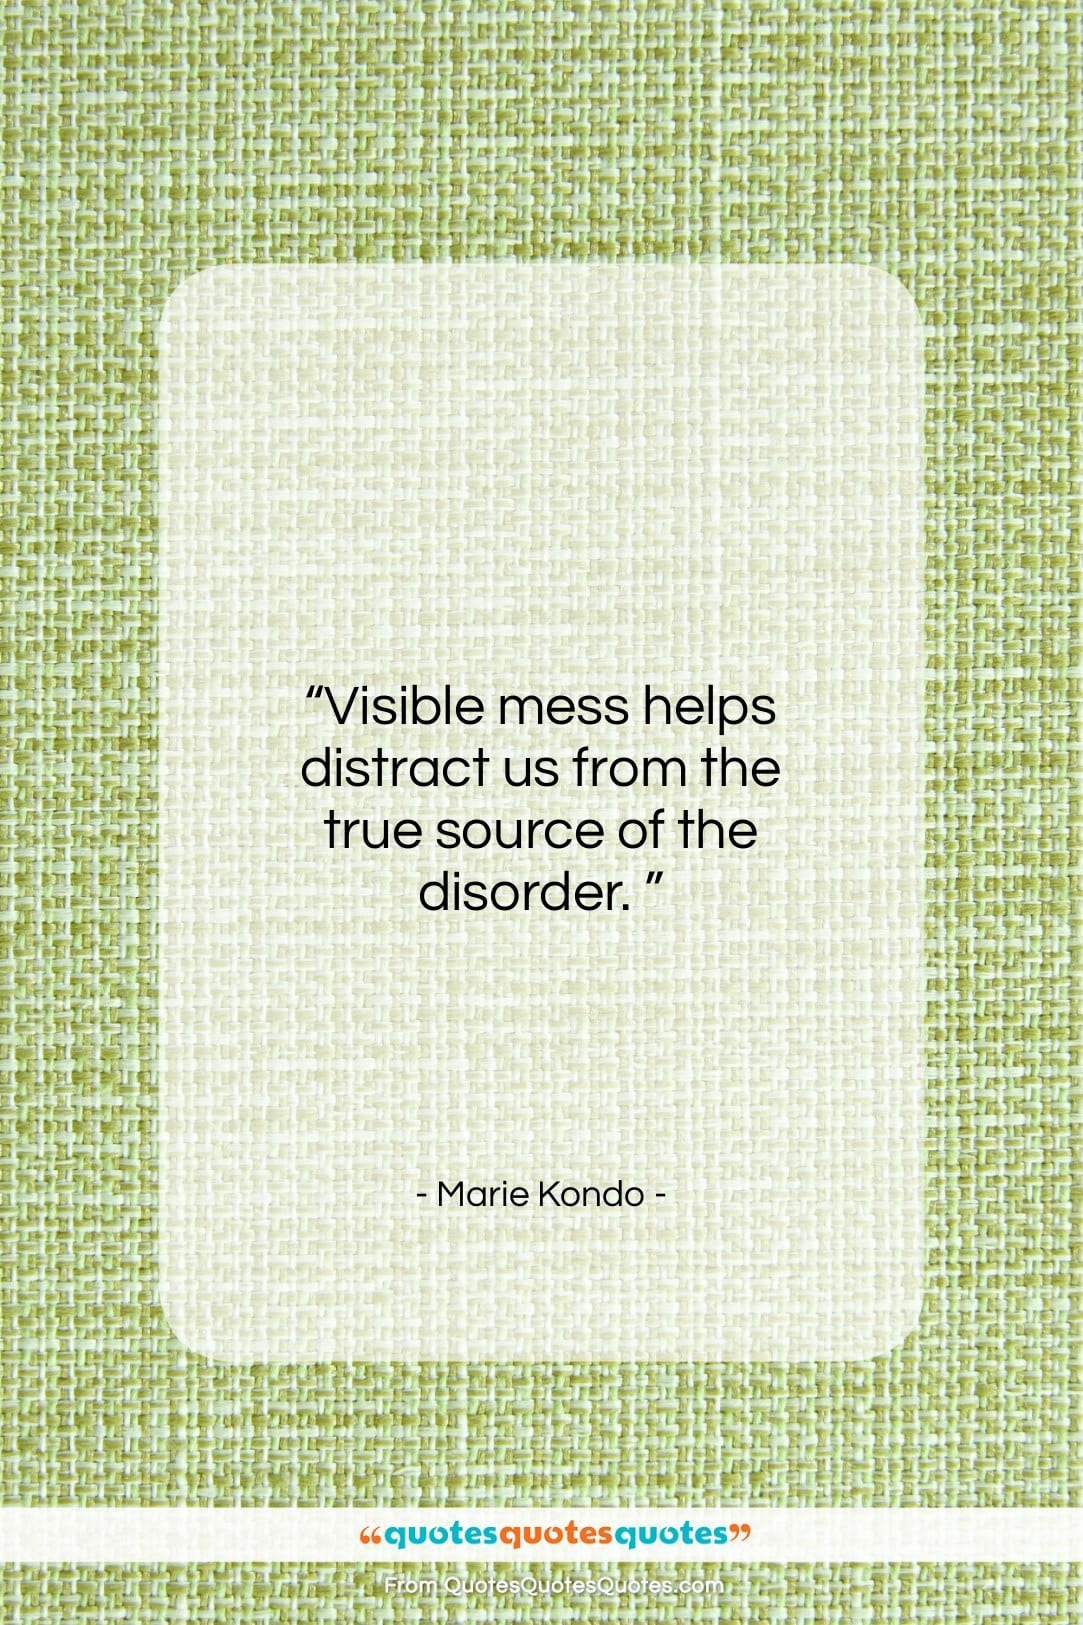 """Marie Kondo quote: """"Visible mess helps distract us from the…""""- at QuotesQuotesQuotes.com"""